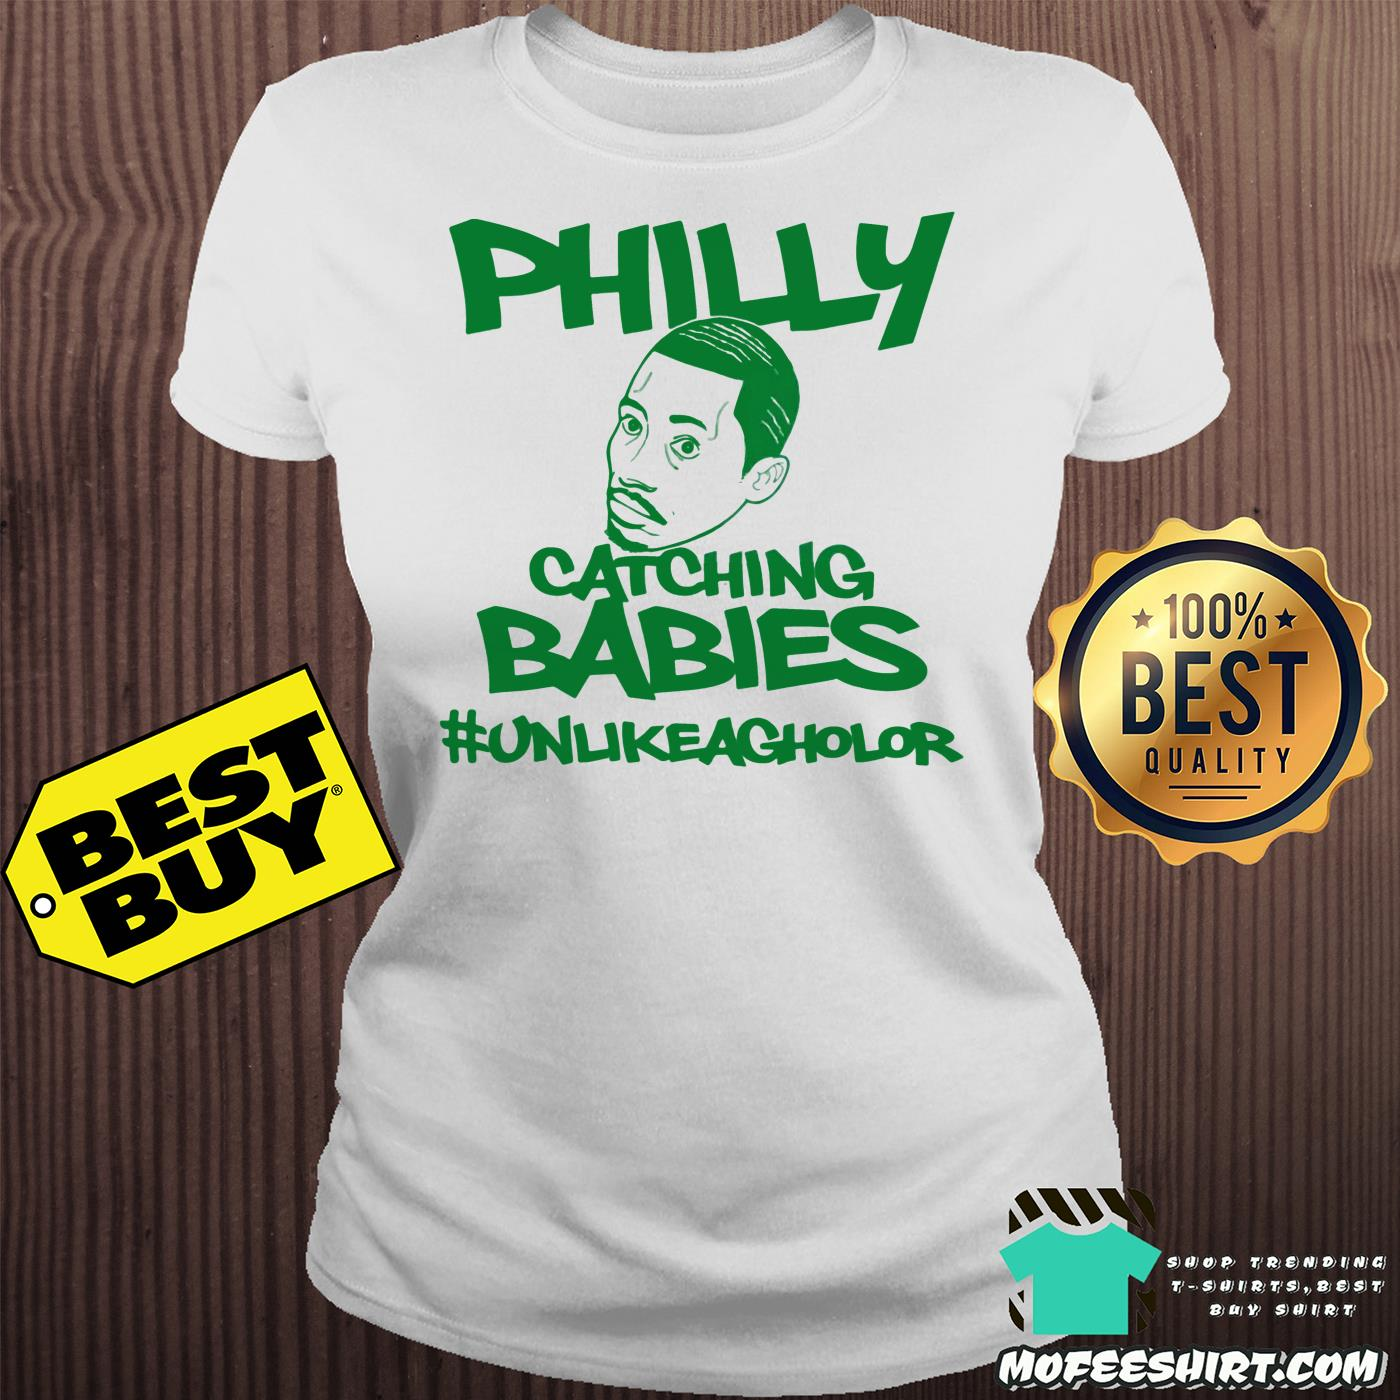 philly catching babies unlike agholor ladies tee - Philly Catching Babies Unlike Agholor shirt